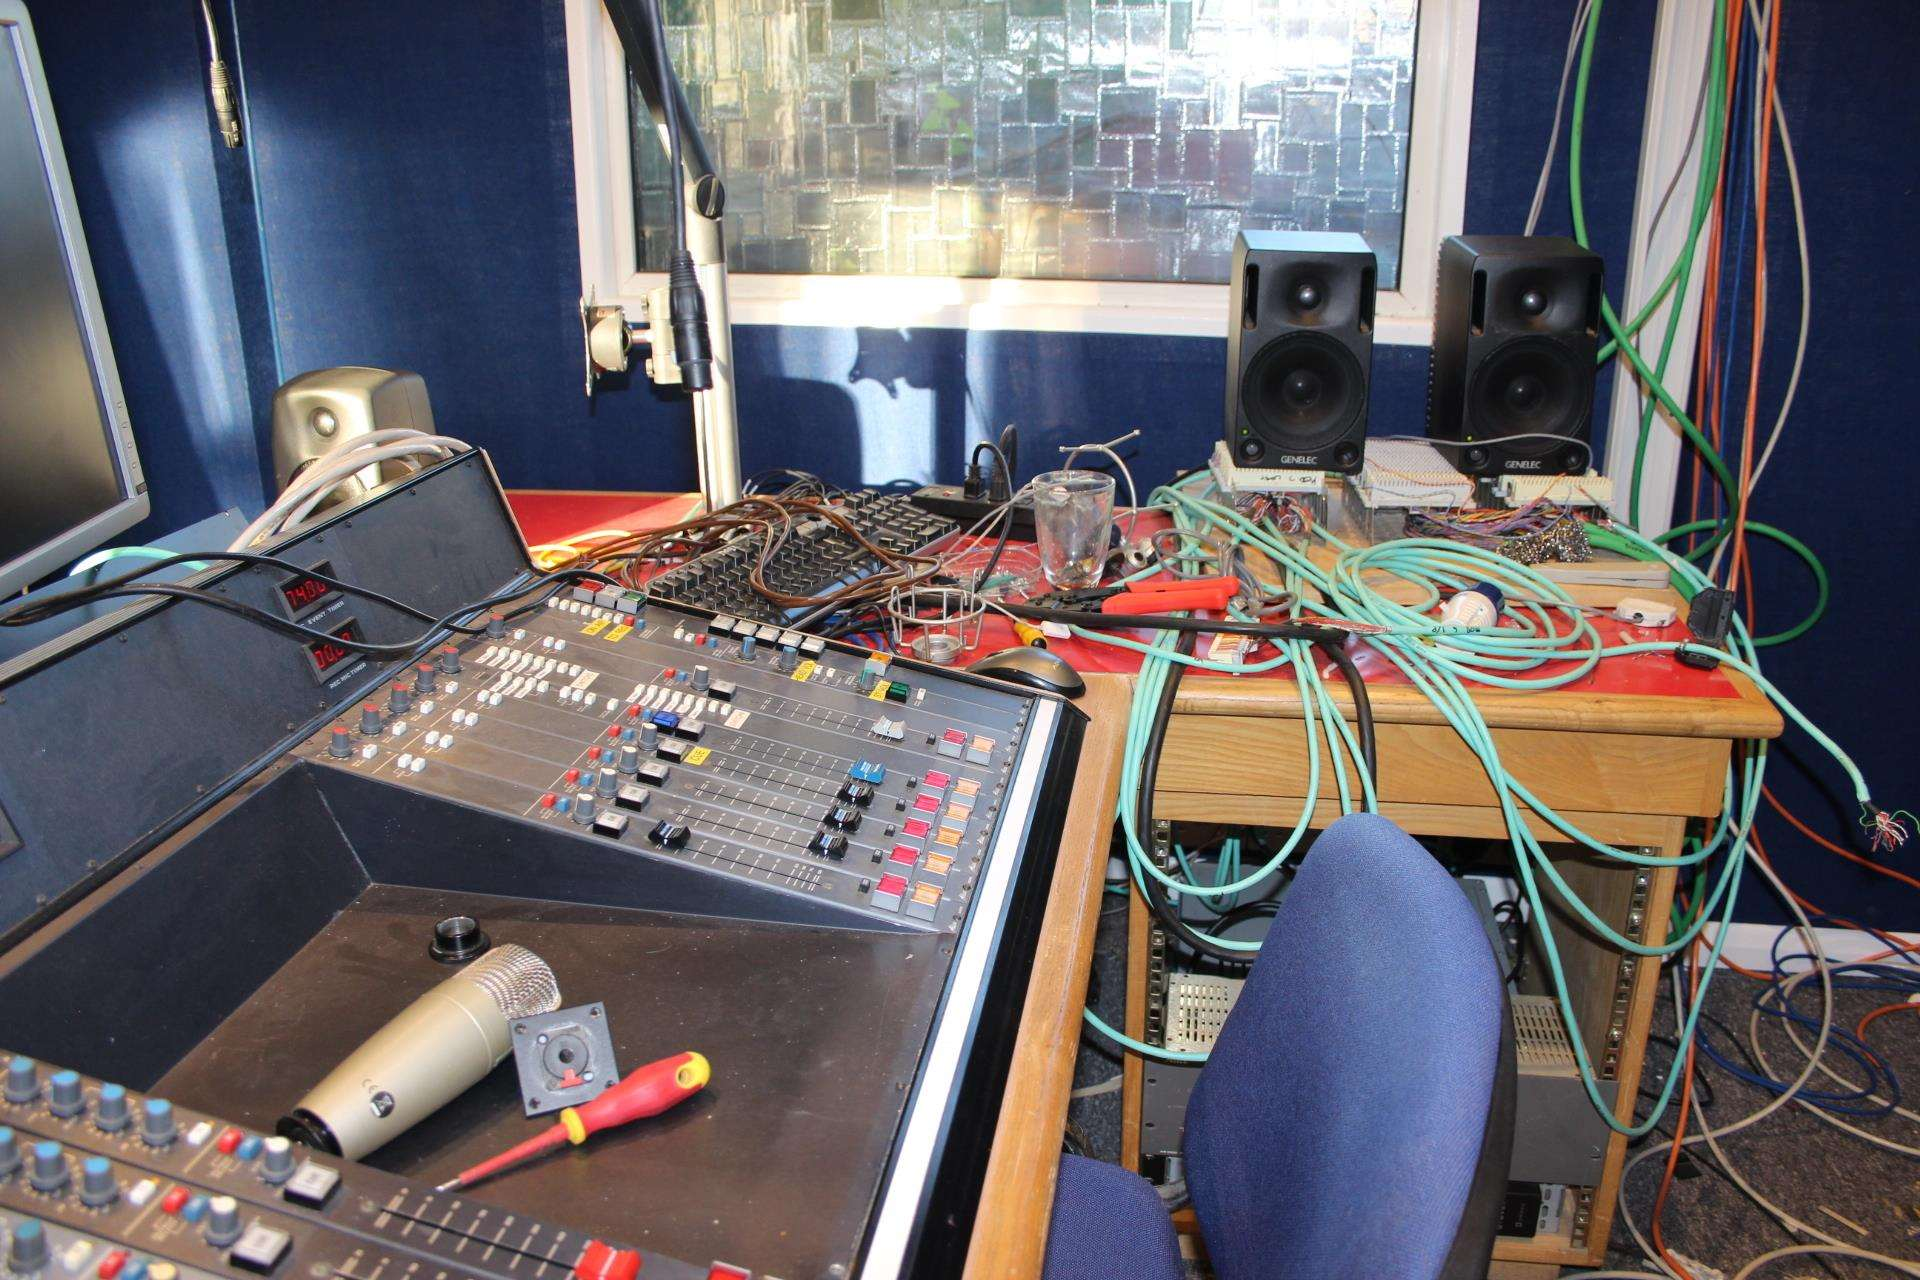 Work in progress at BRFM's new radio studio last summer